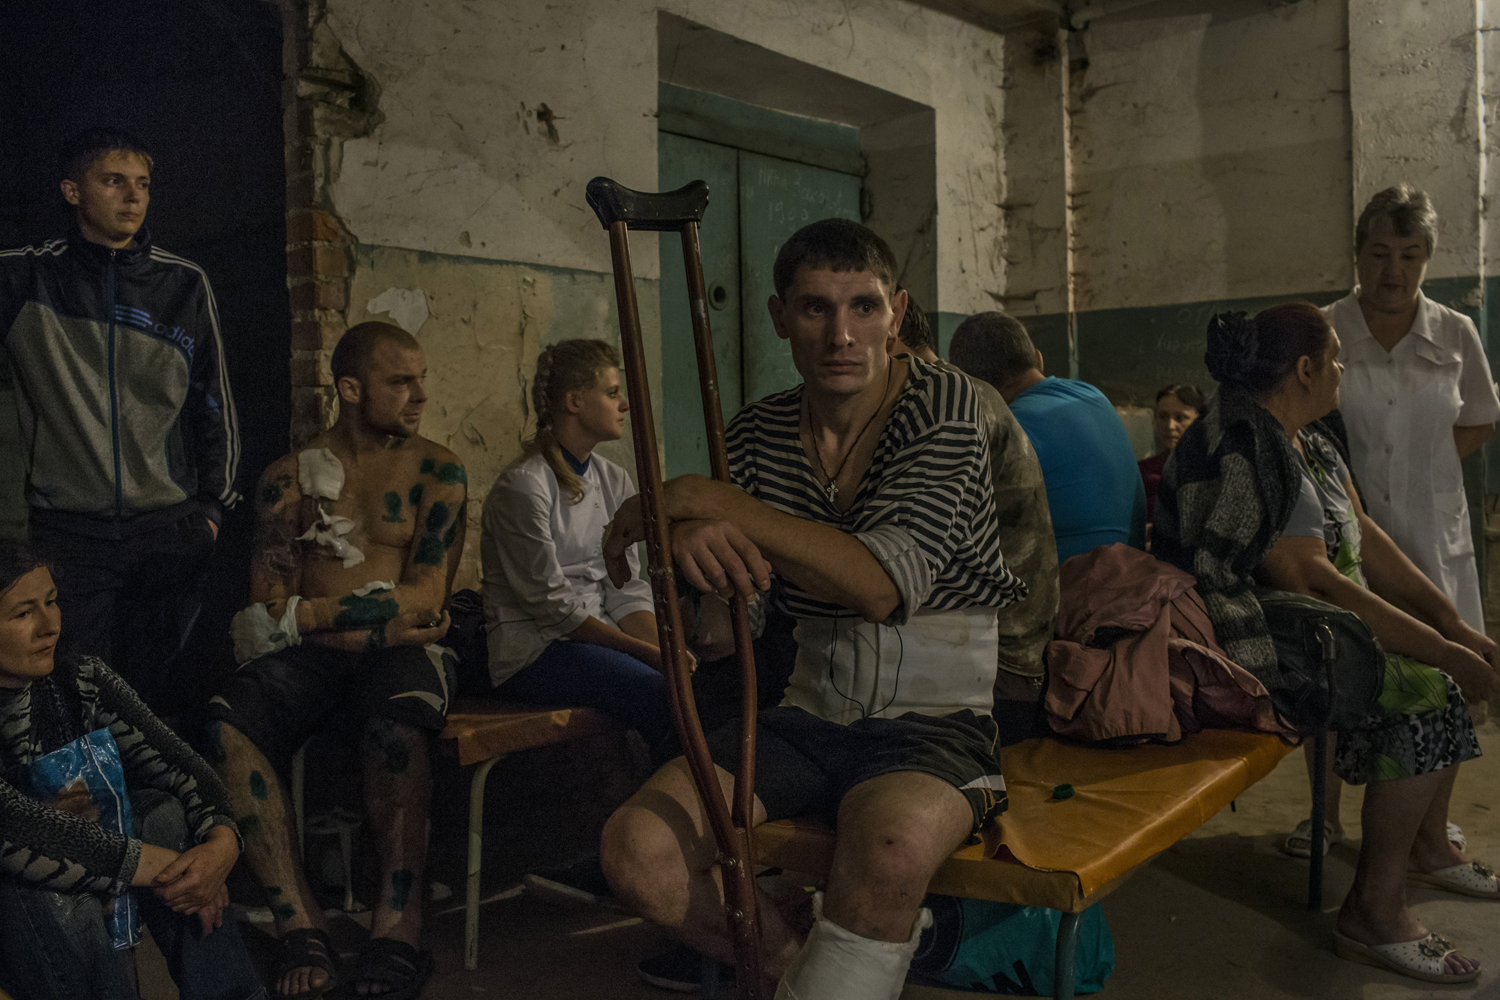 Aug. 24, 2014. Patients and relatives gather in a hospital basement after an early-morning shelling that hit the hospital compound in central Donetsk, Ukraine.